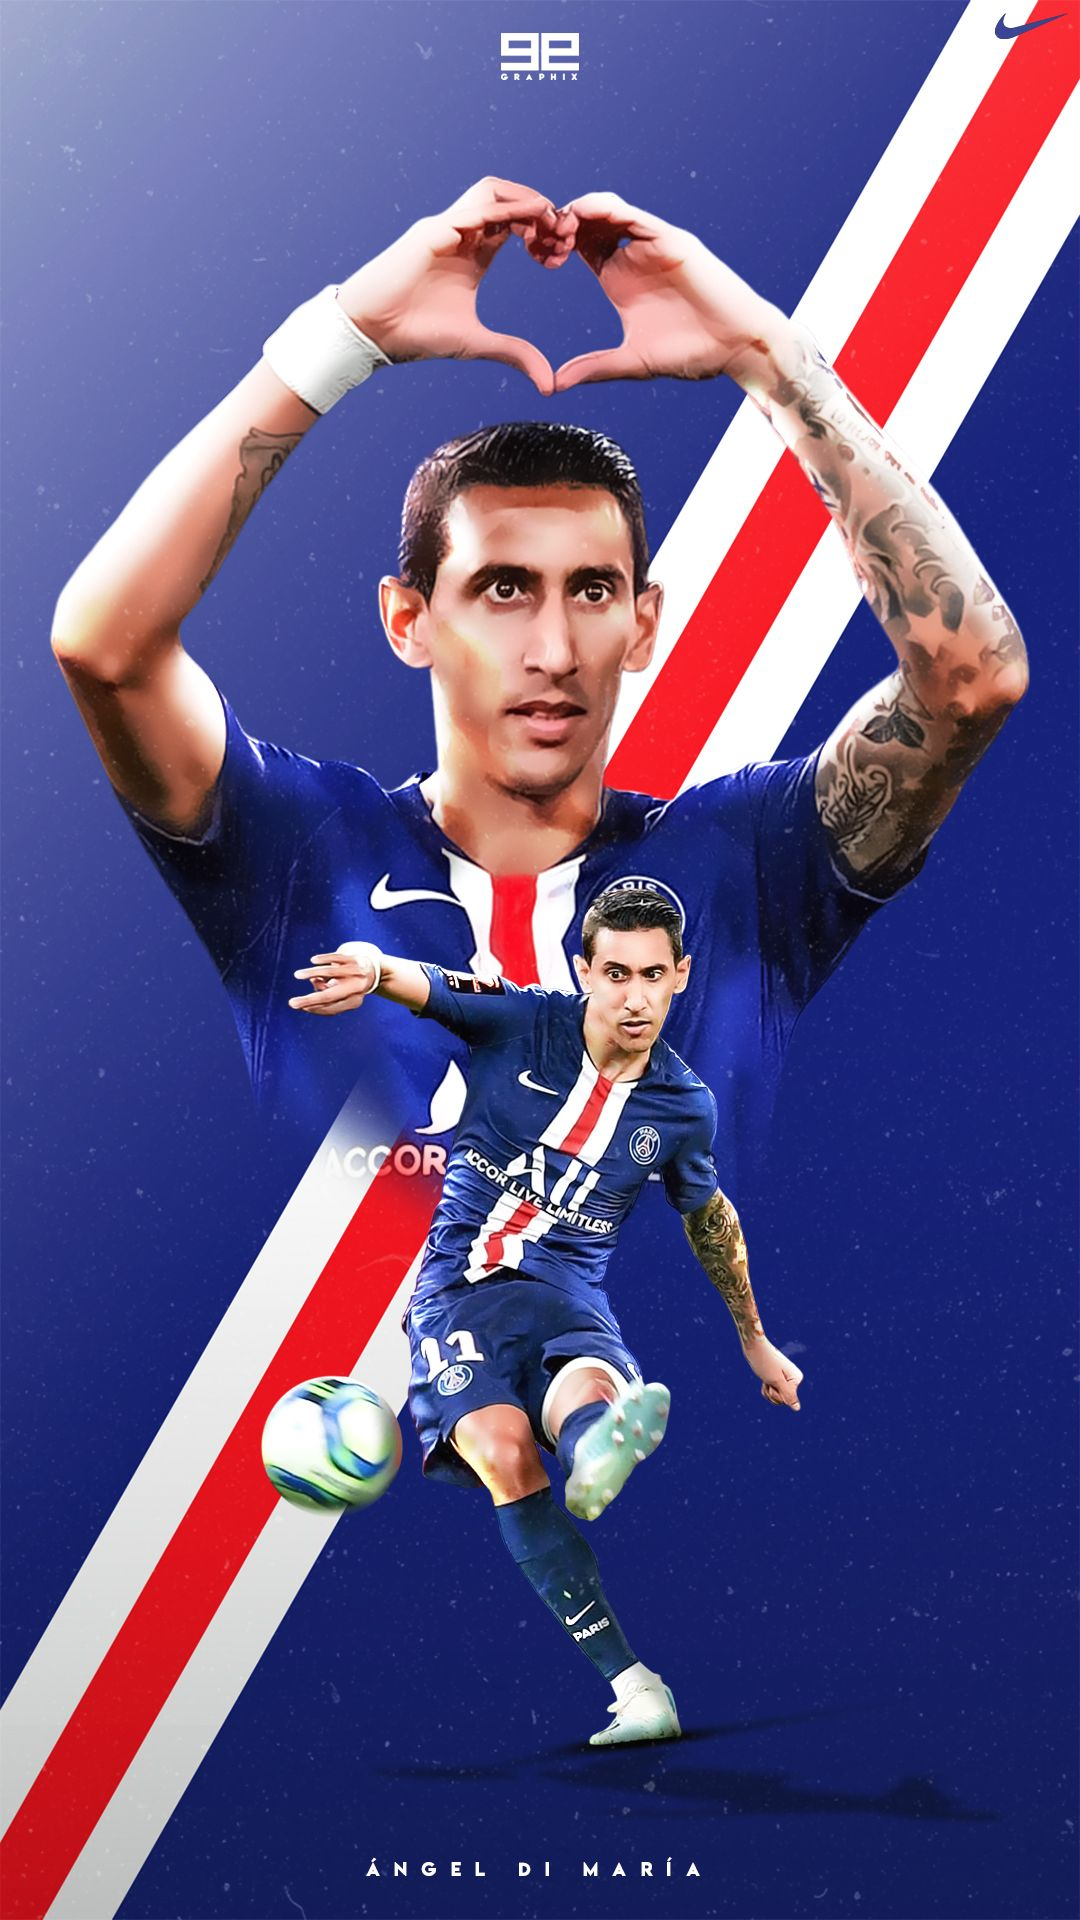 Epingle Sur My Work Angel di maria wallpapers